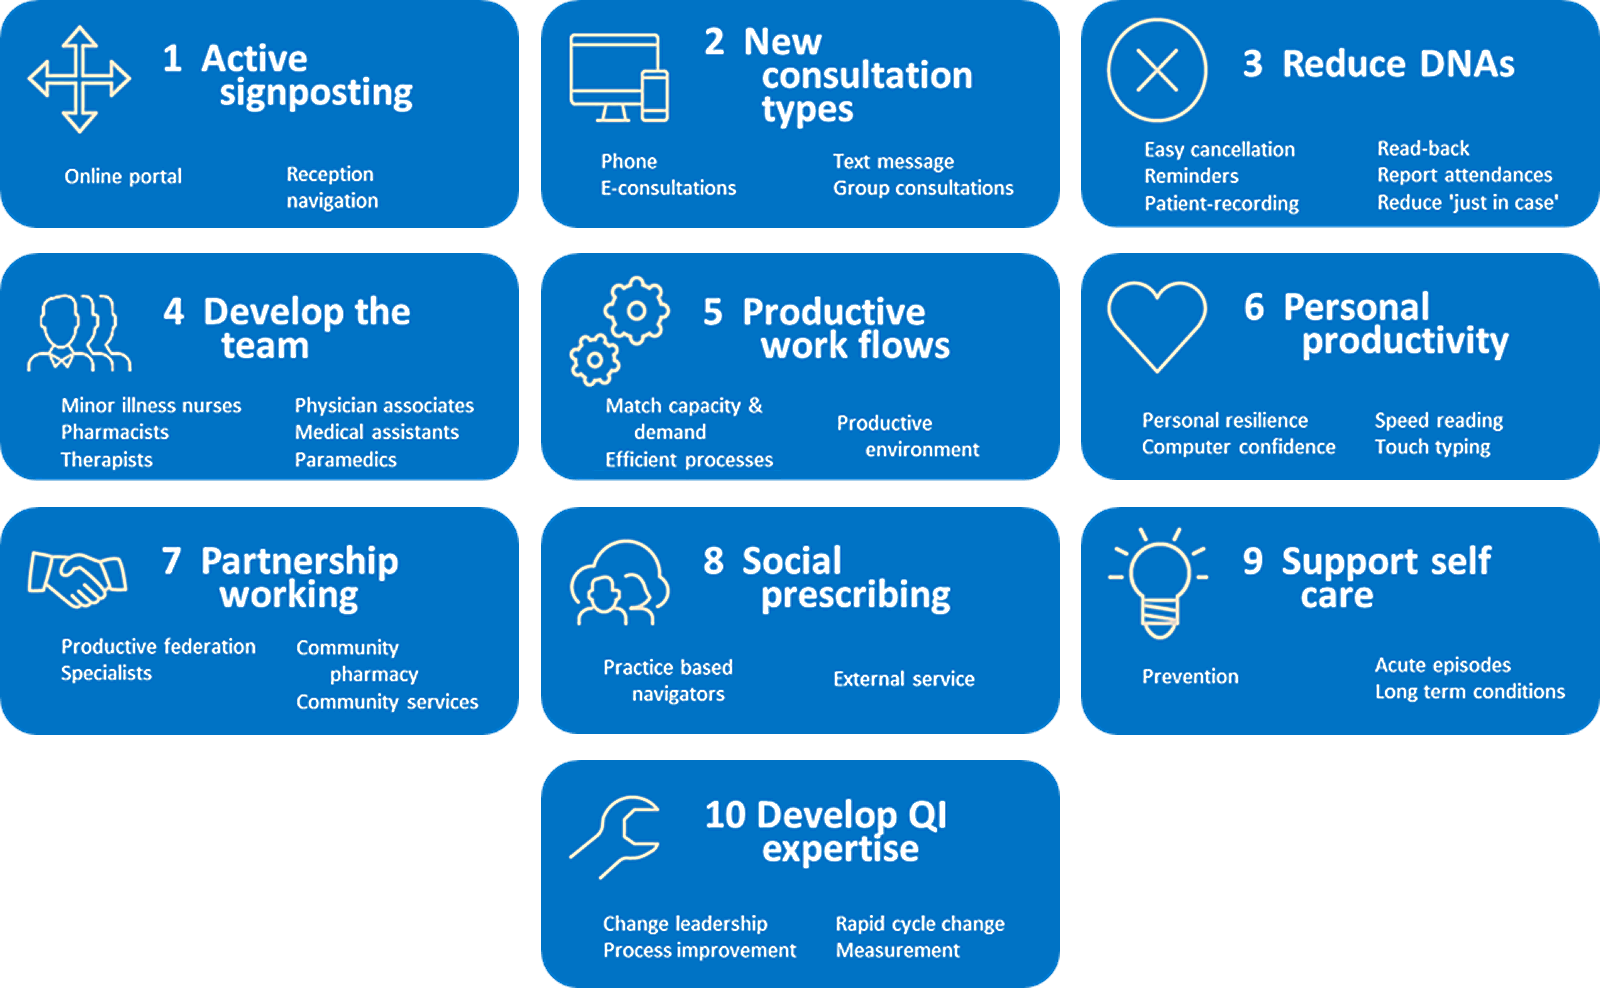 NHS Ten High Impact Actions